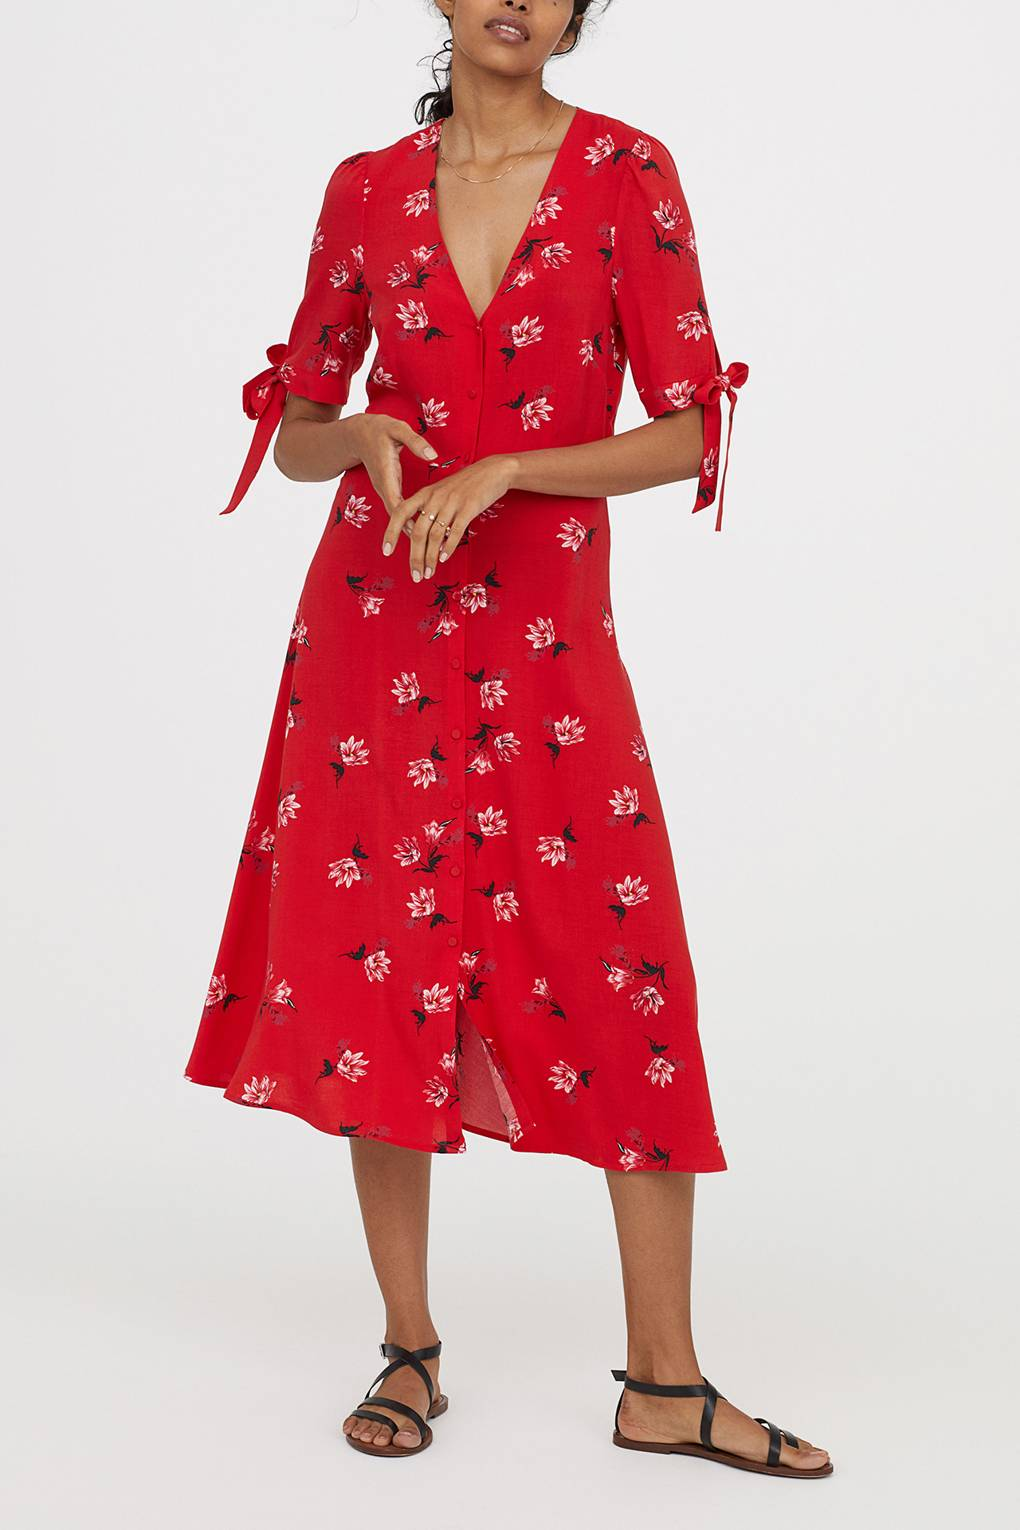 Zara Floral Midi Dress Will This Be The Most Popular Dress Of The